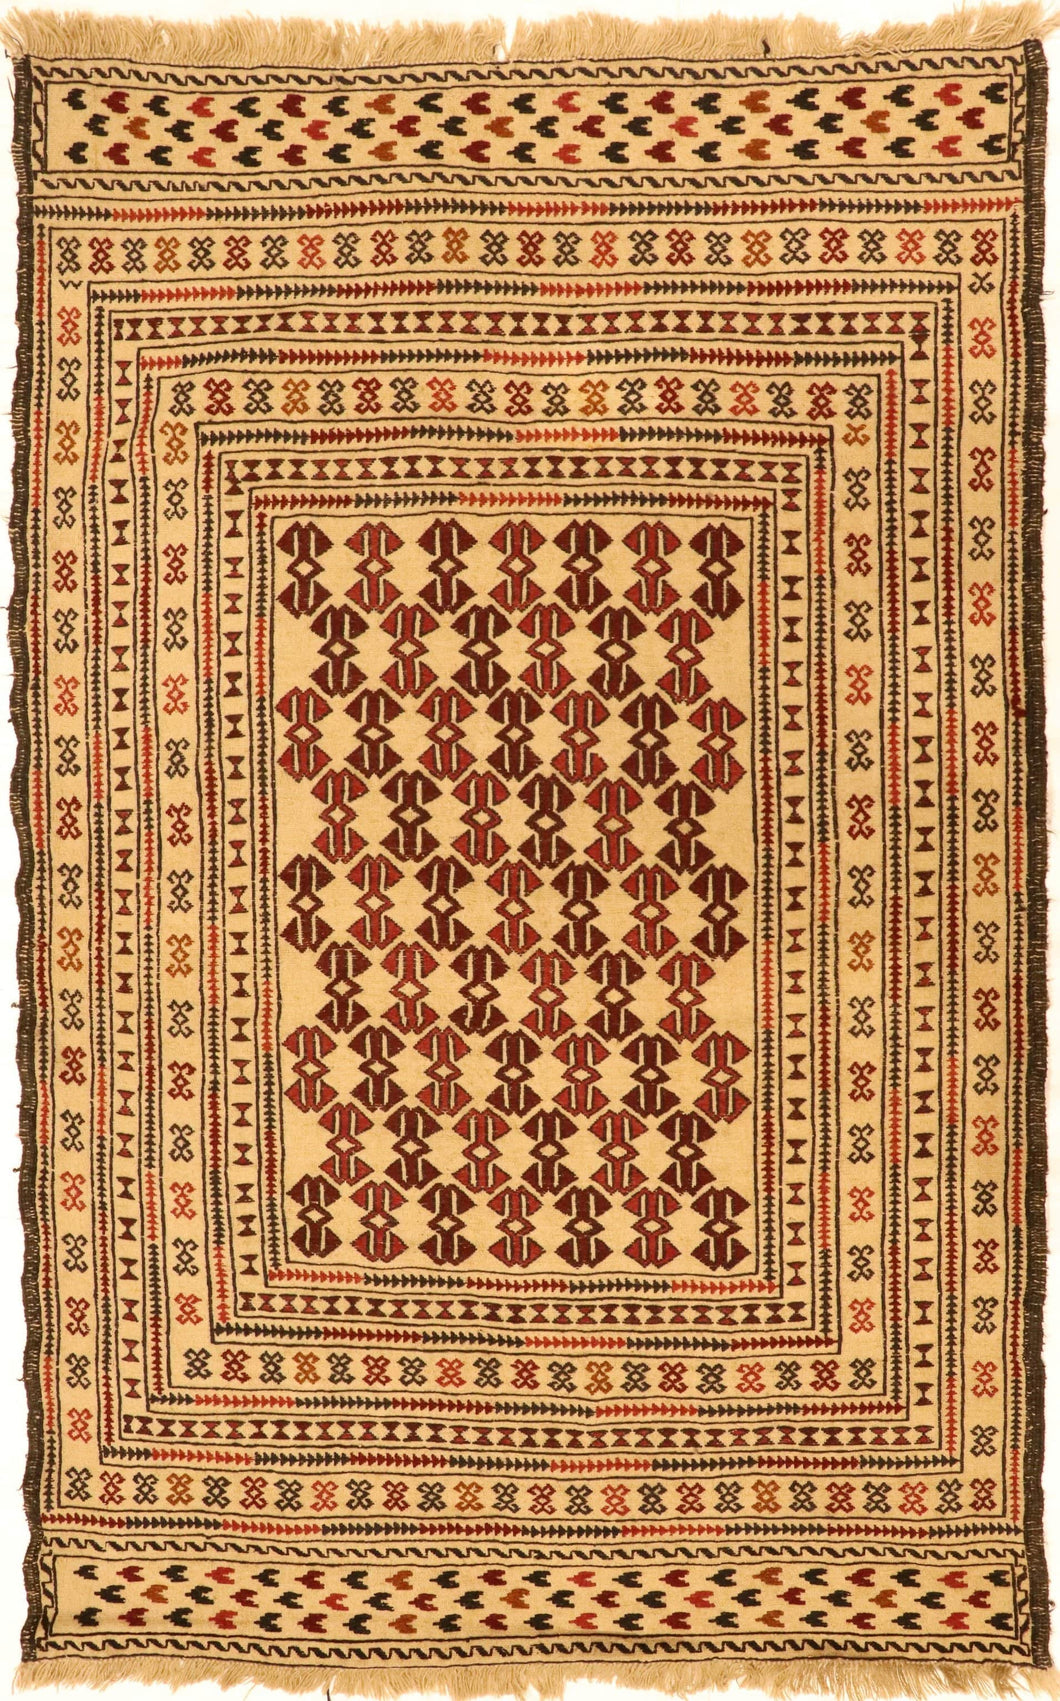 The Rugs Cafe Carpets 4X6.2 Kilim Hand-Knotted Vintage Area Rug